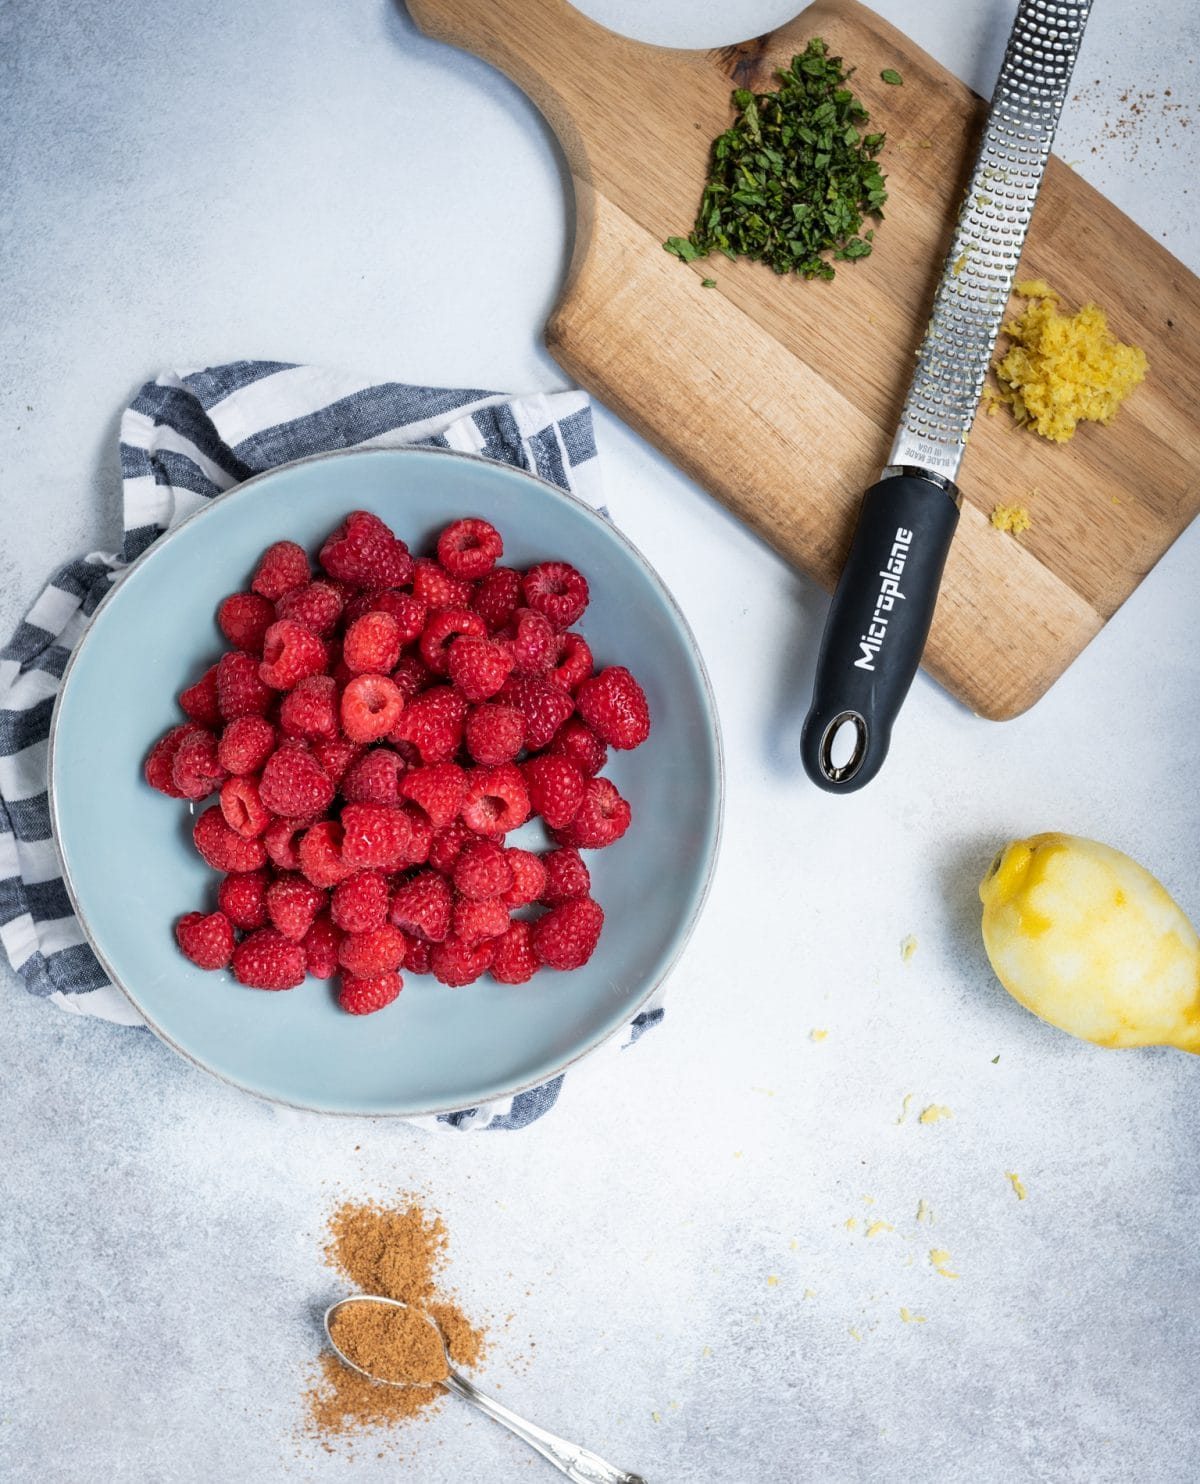 Overhead picture of Raspberries with lemon zest and mint ingredients